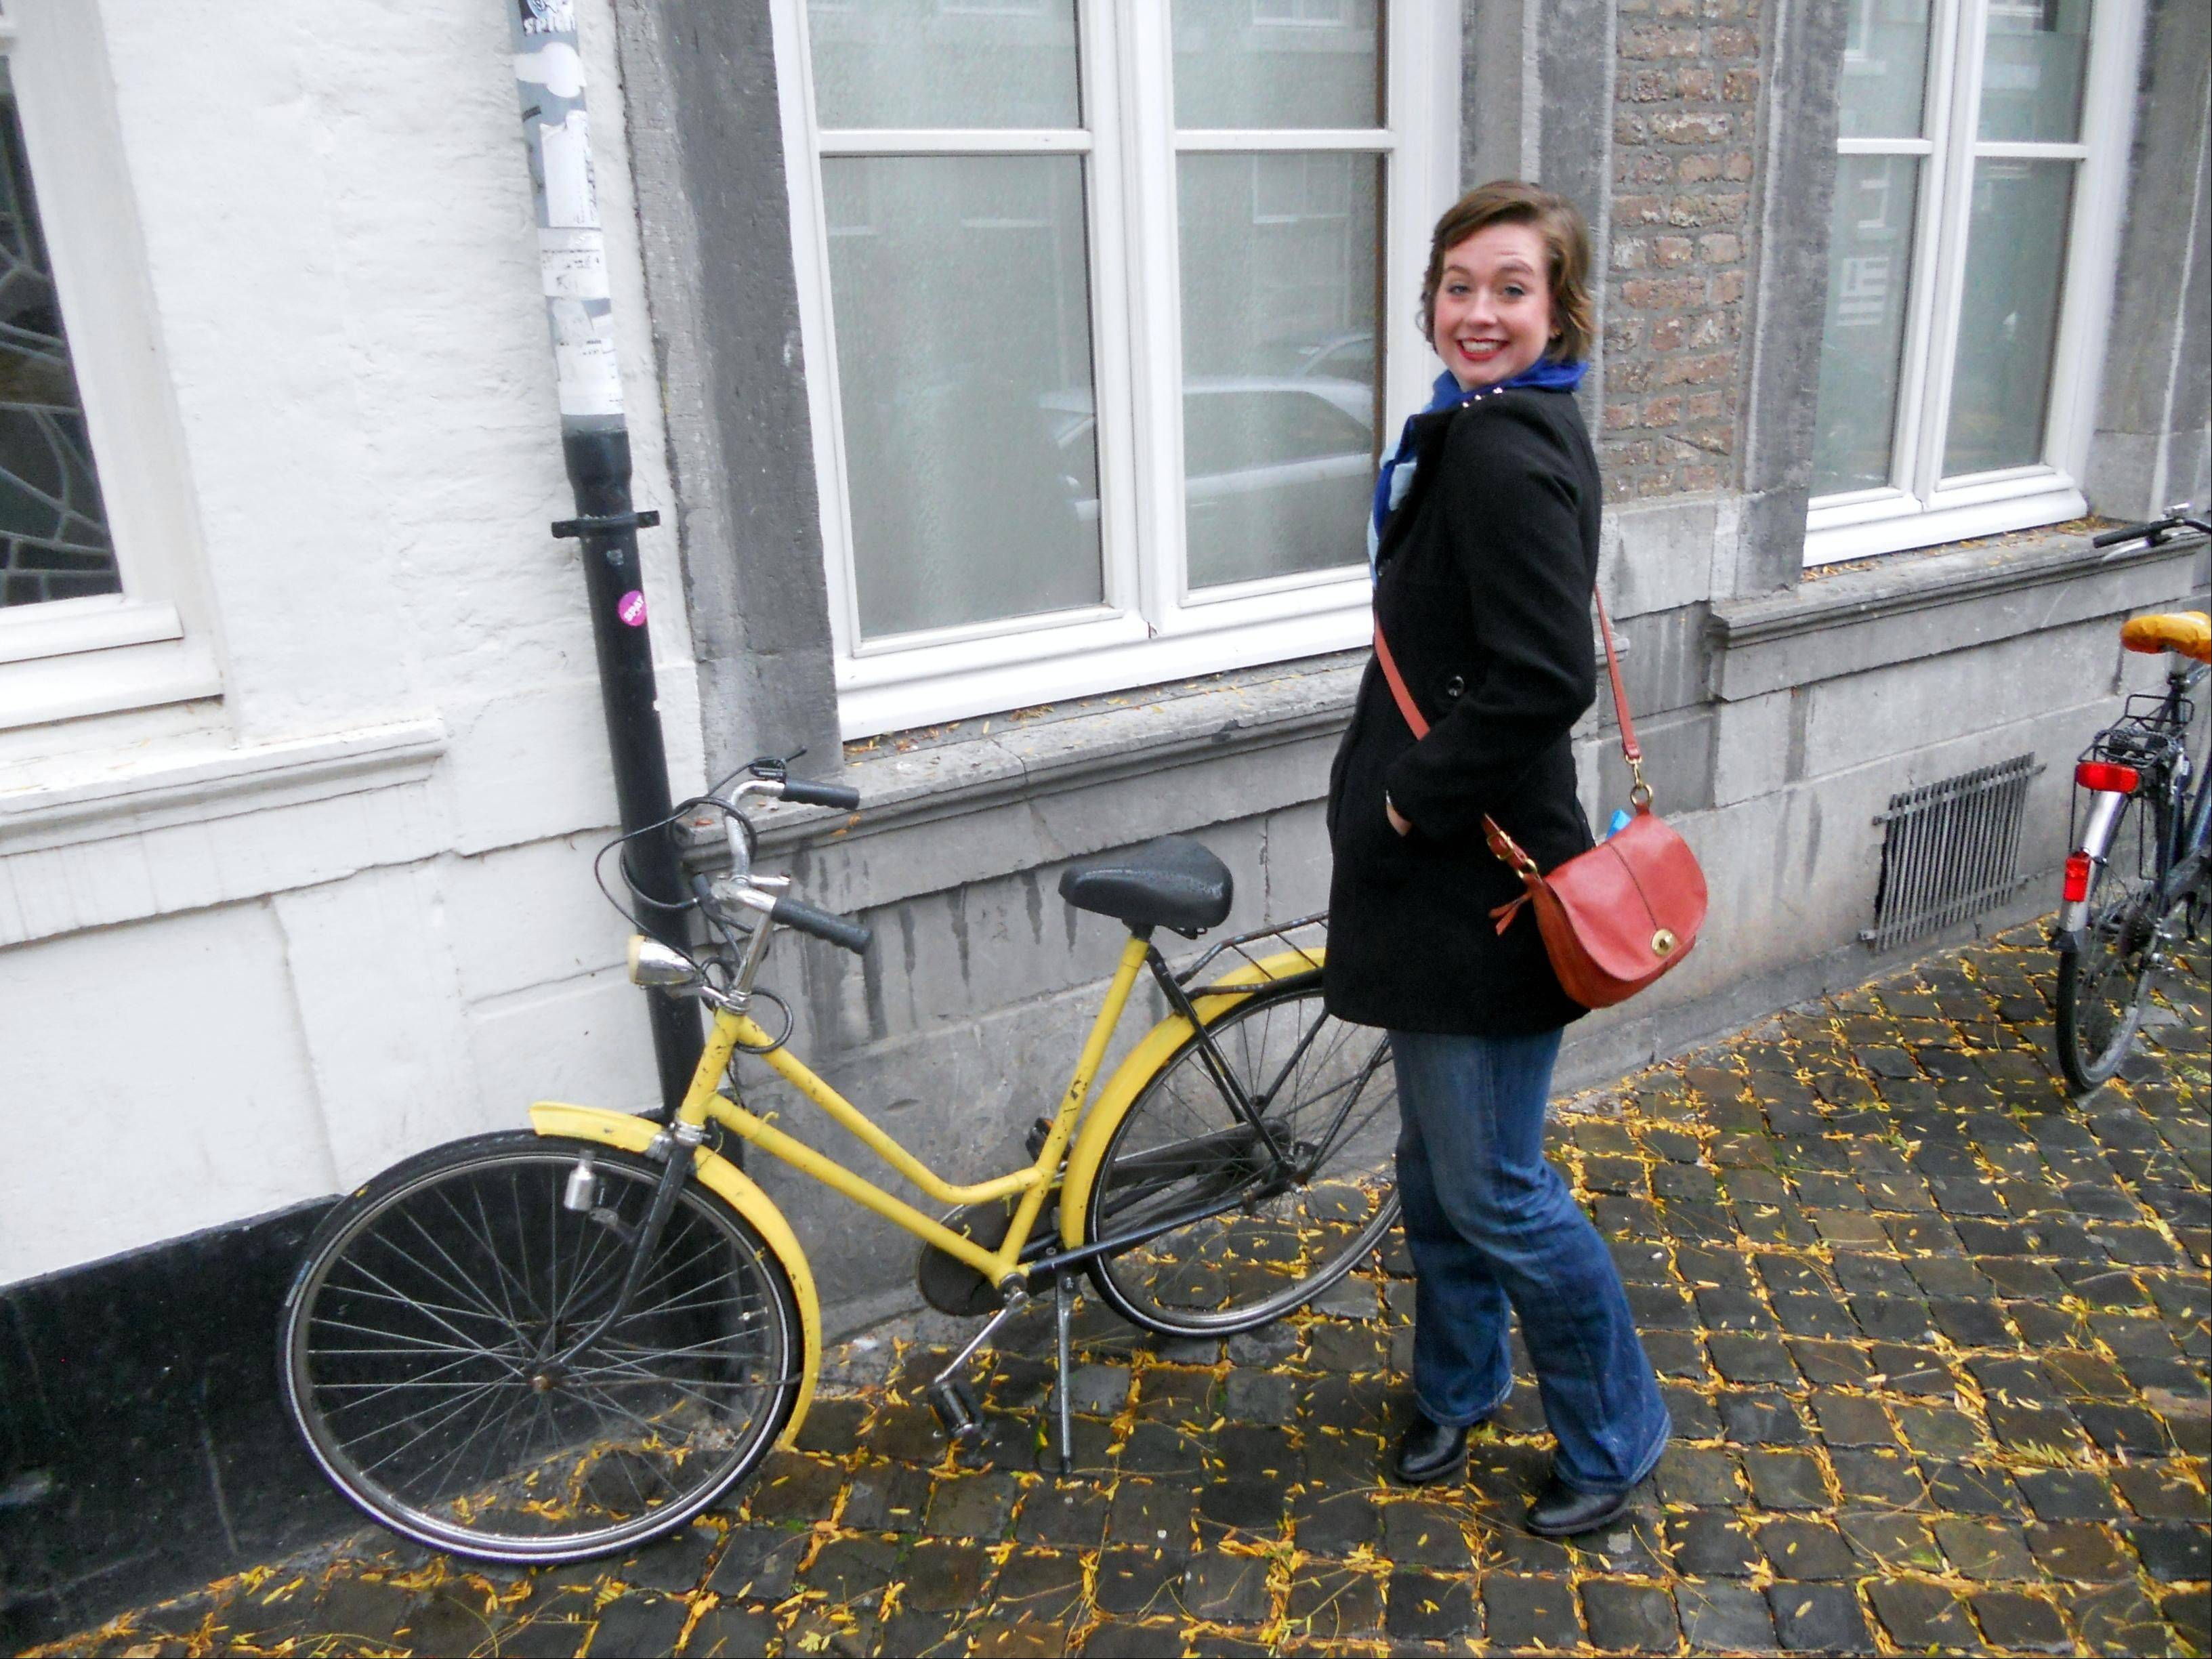 Rachel Cliburn's Dutch mode of transportation in Maastricht, Netherlands, is this secondhand bike she painted yellow. She's also joined a rowing club as part of her effort to immerse herself in Dutch culture.